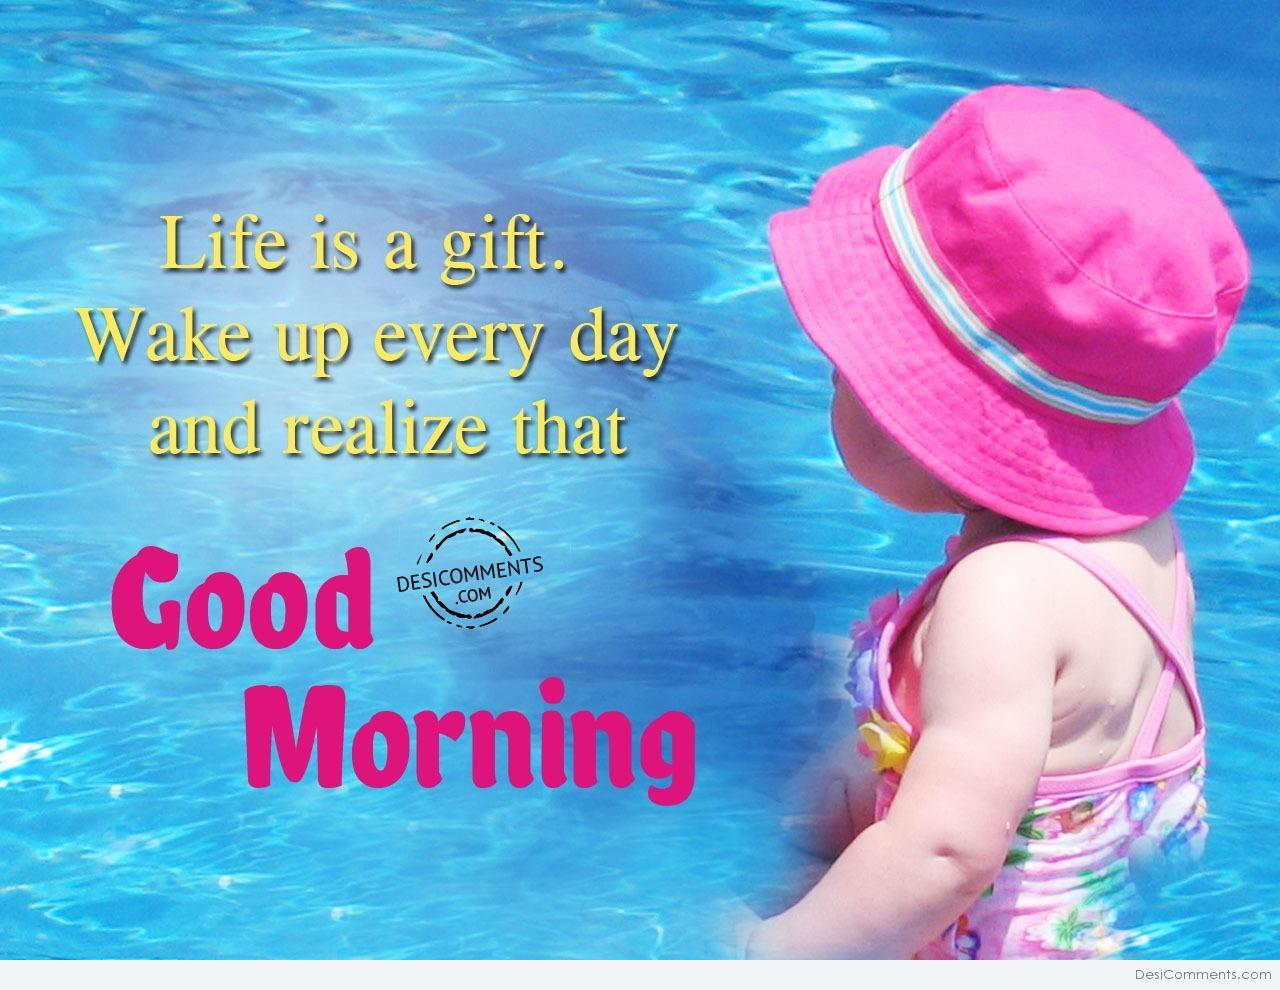 Life is a gift good morning desicomments life is a gift good morning negle Choice Image